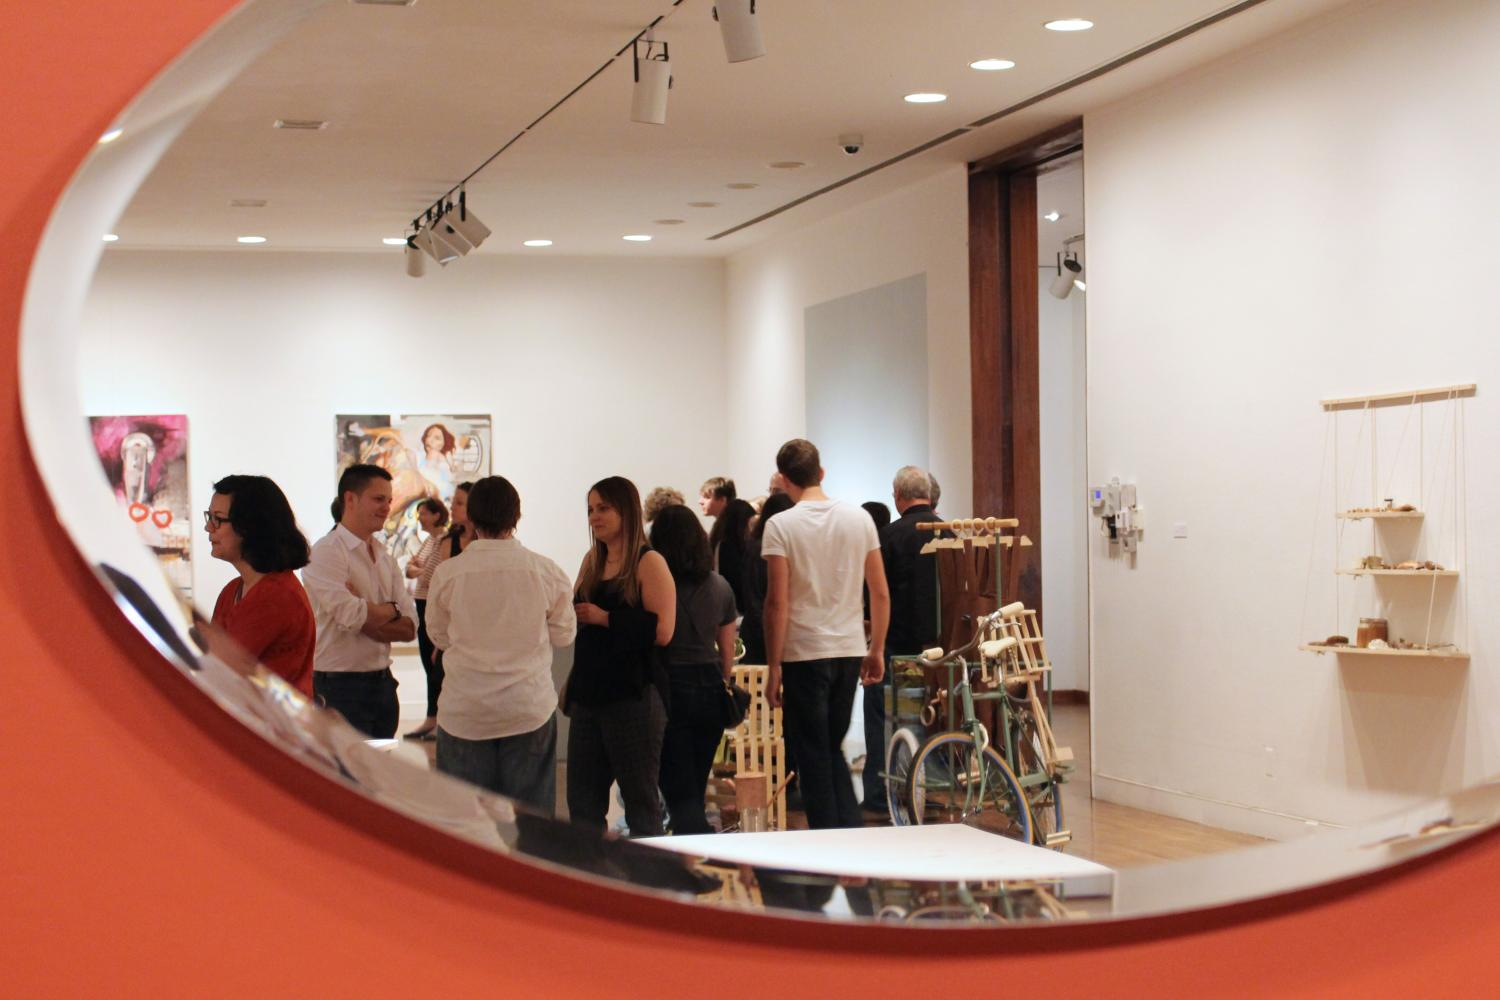 School of Art and Design Master of Fine Arts Exhibition, installation at Krannert Art Museum, 2014.